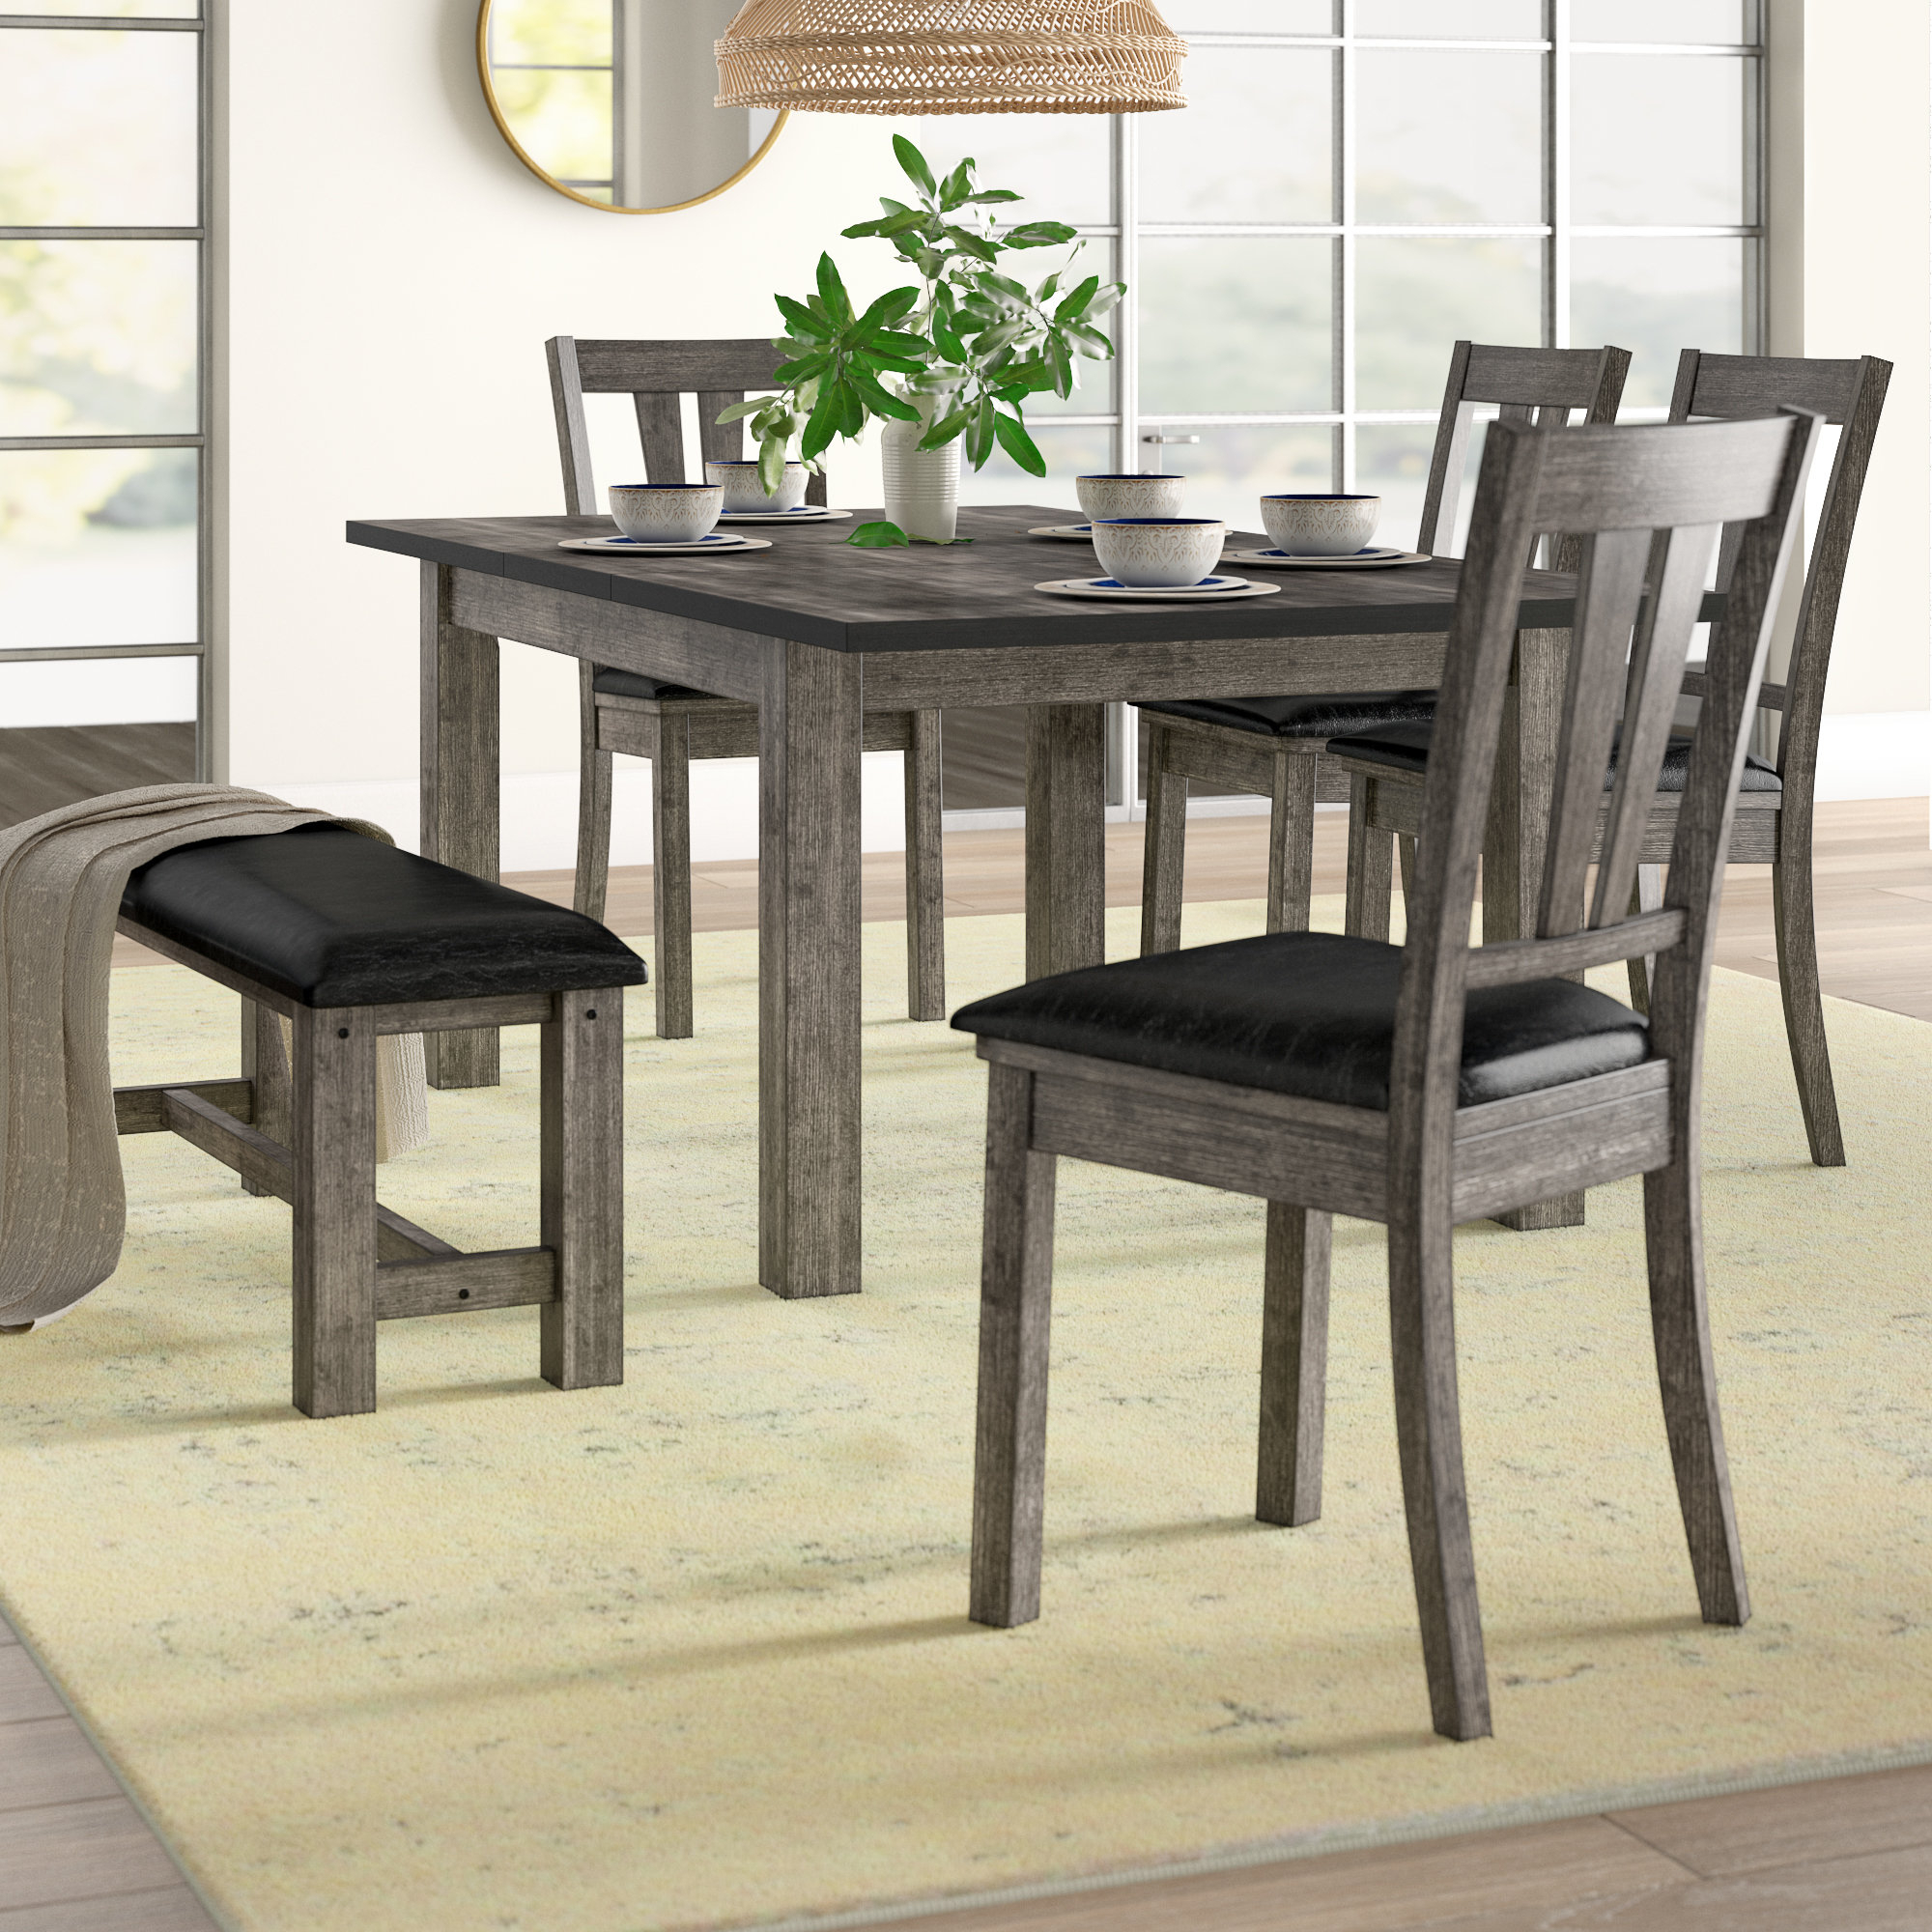 Chelmsford 3 Piece Dining Sets Throughout Favorite Katarina 6 Piece Extendable Solid Wood Dining Set (View 12 of 20)